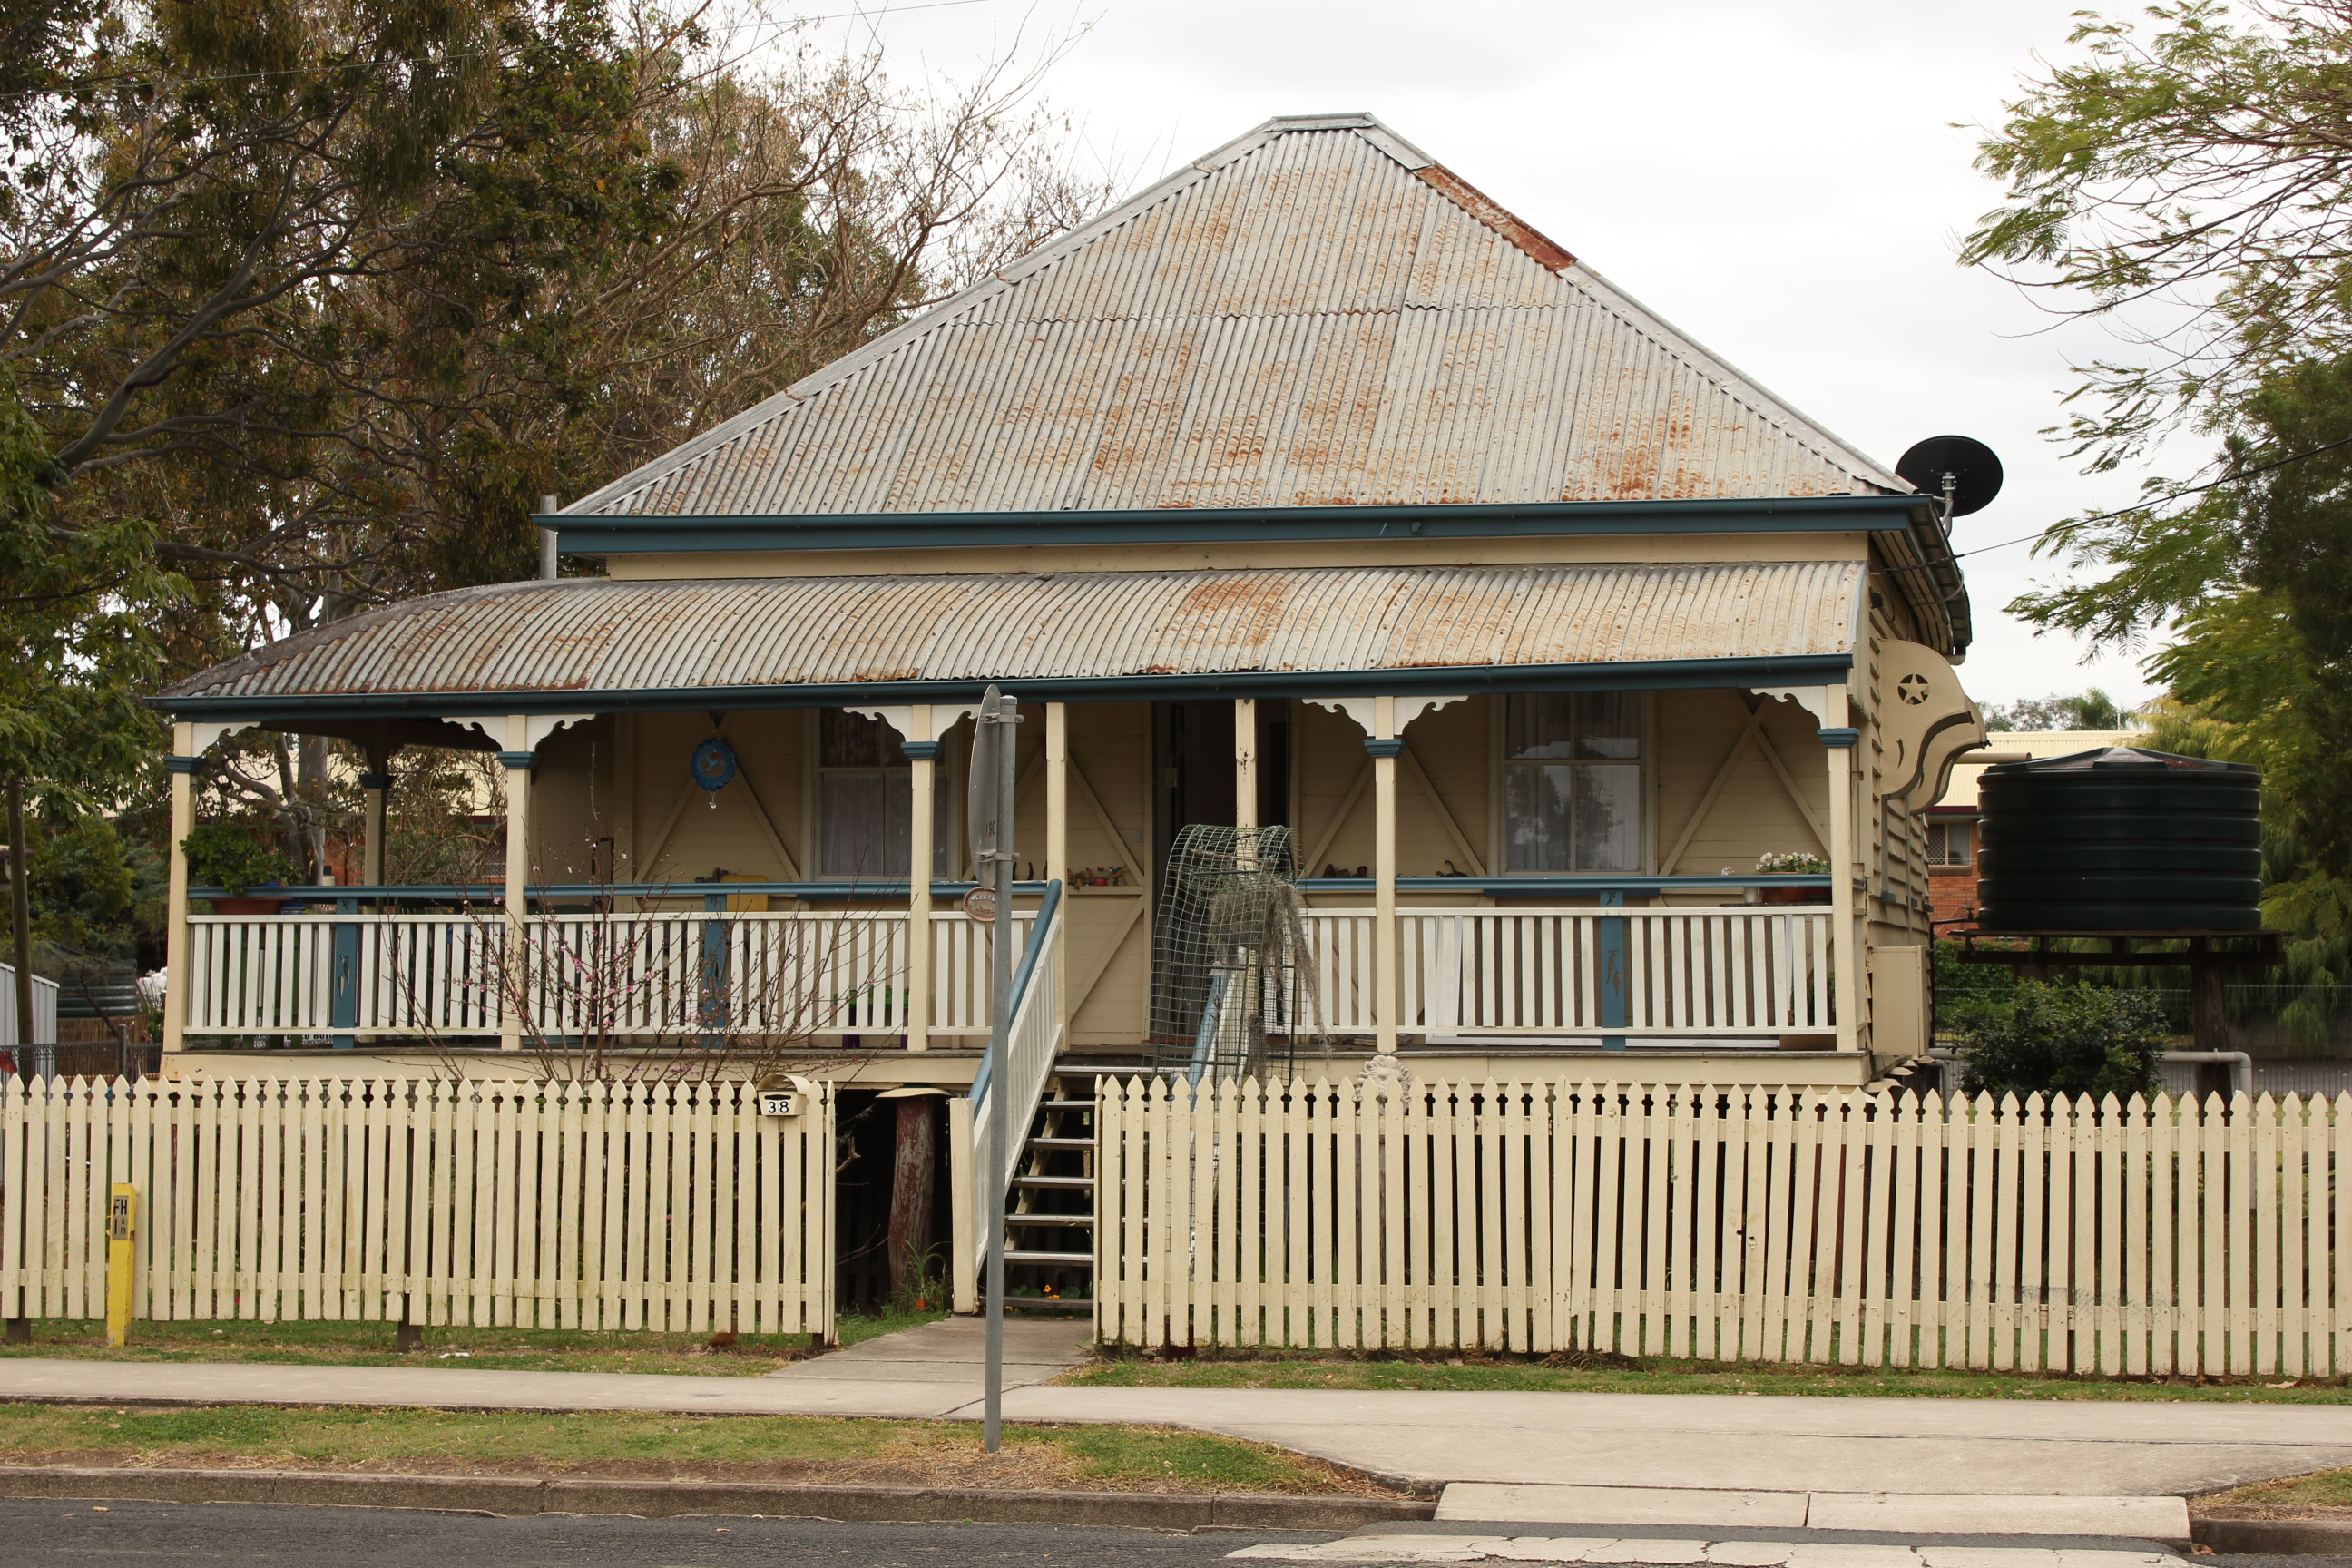 File:Laidley Queenslander house.jpg - Wikimedia Commons